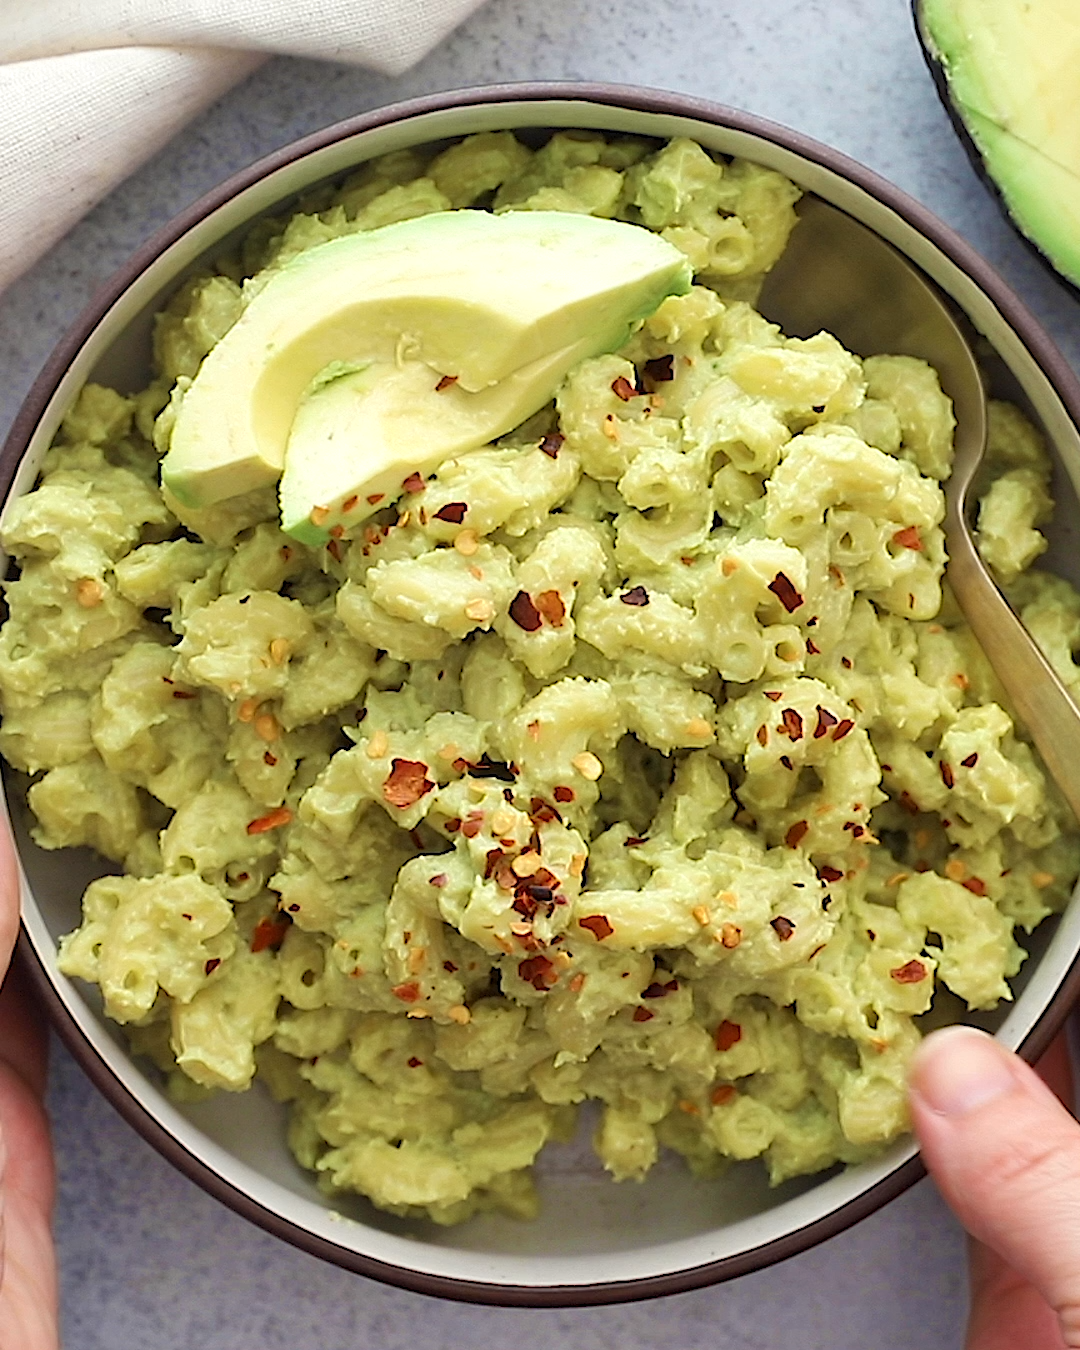 Vegan Avocado Mac and Cheese #macandcheeserecipe